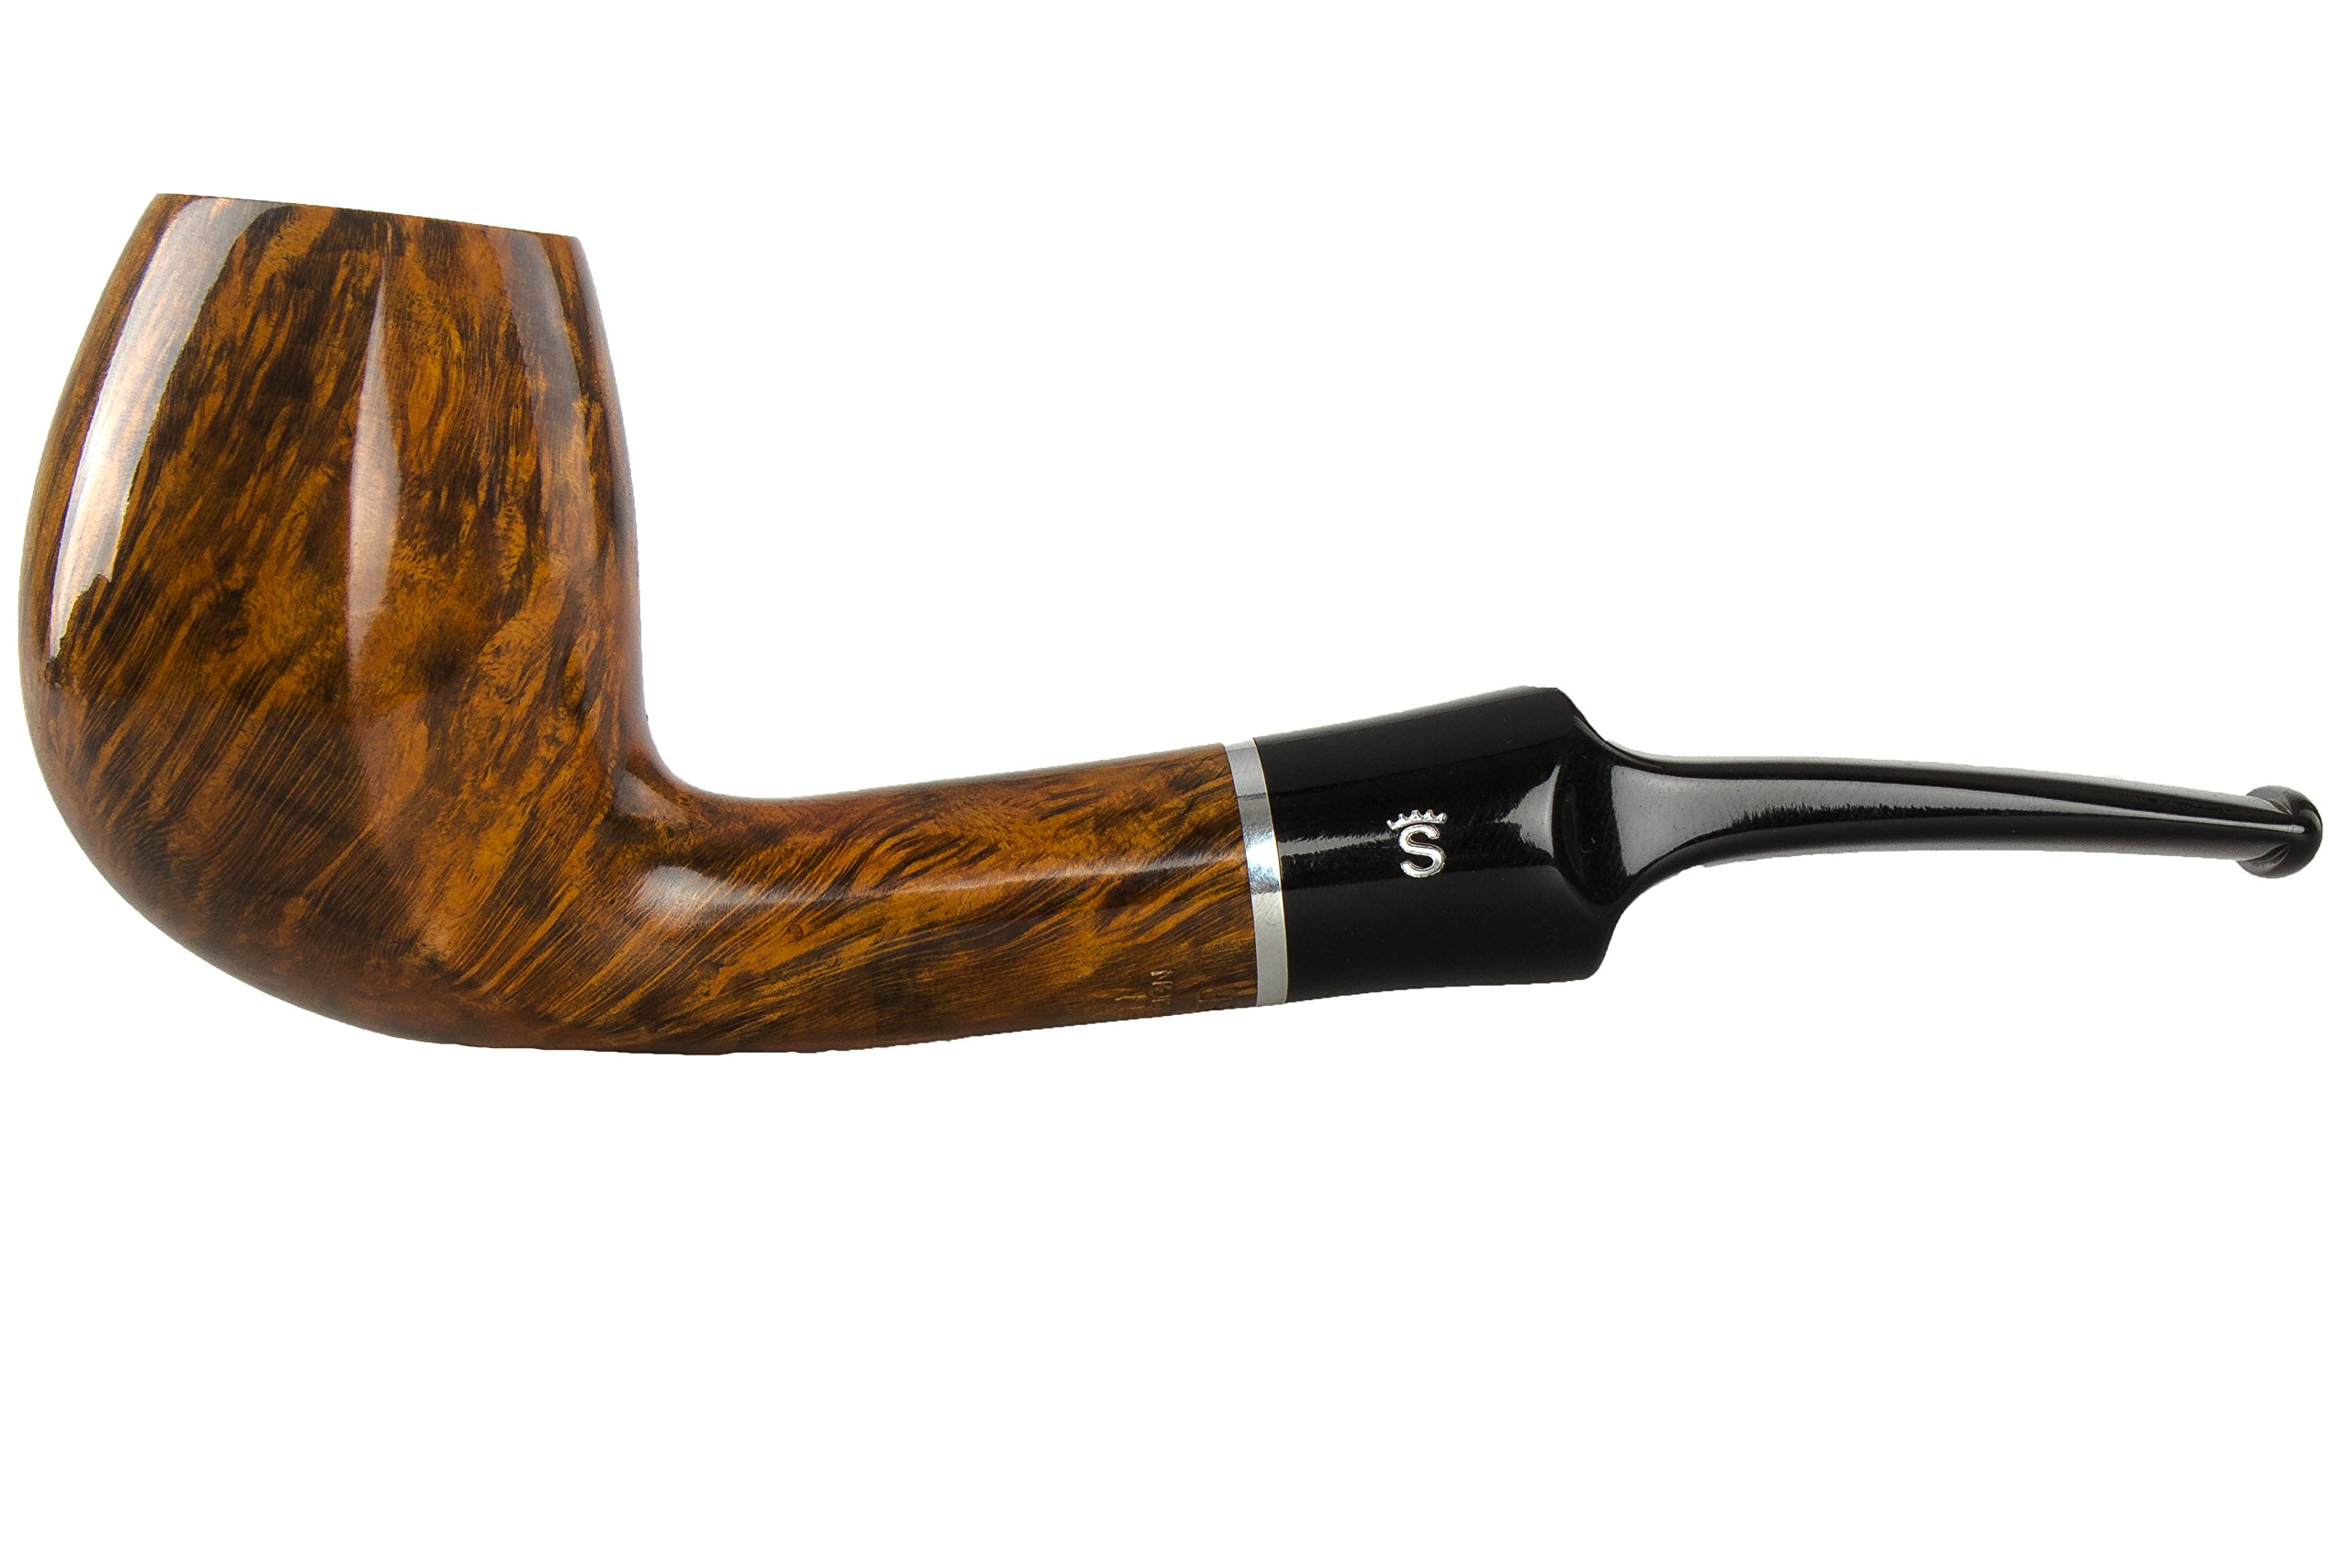 Stanwell Amber Light 403 Tobacco Pipe - Smooth